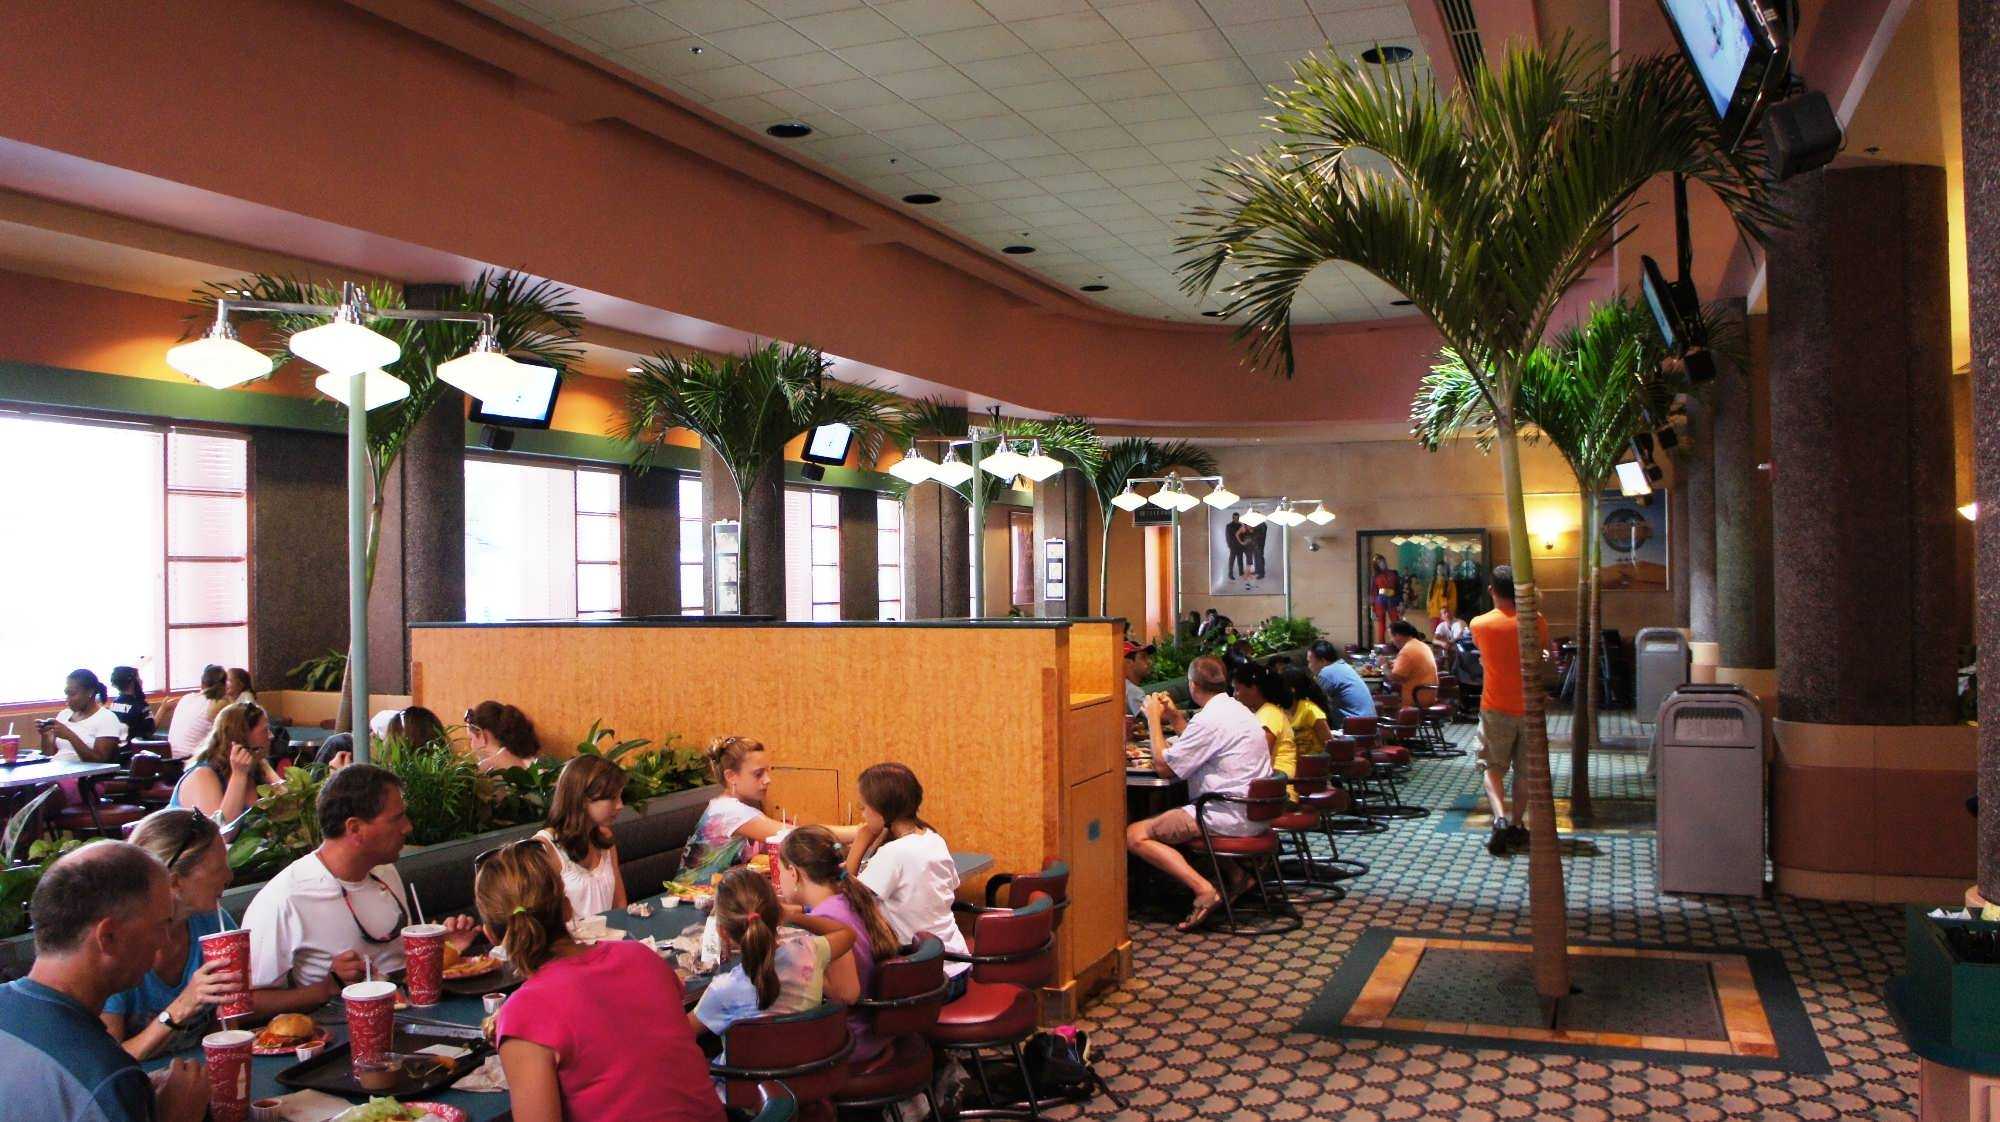 Abc Commissary Quick Service Restaurant At Disney S Hollywood Studios One Of The Seating Sections